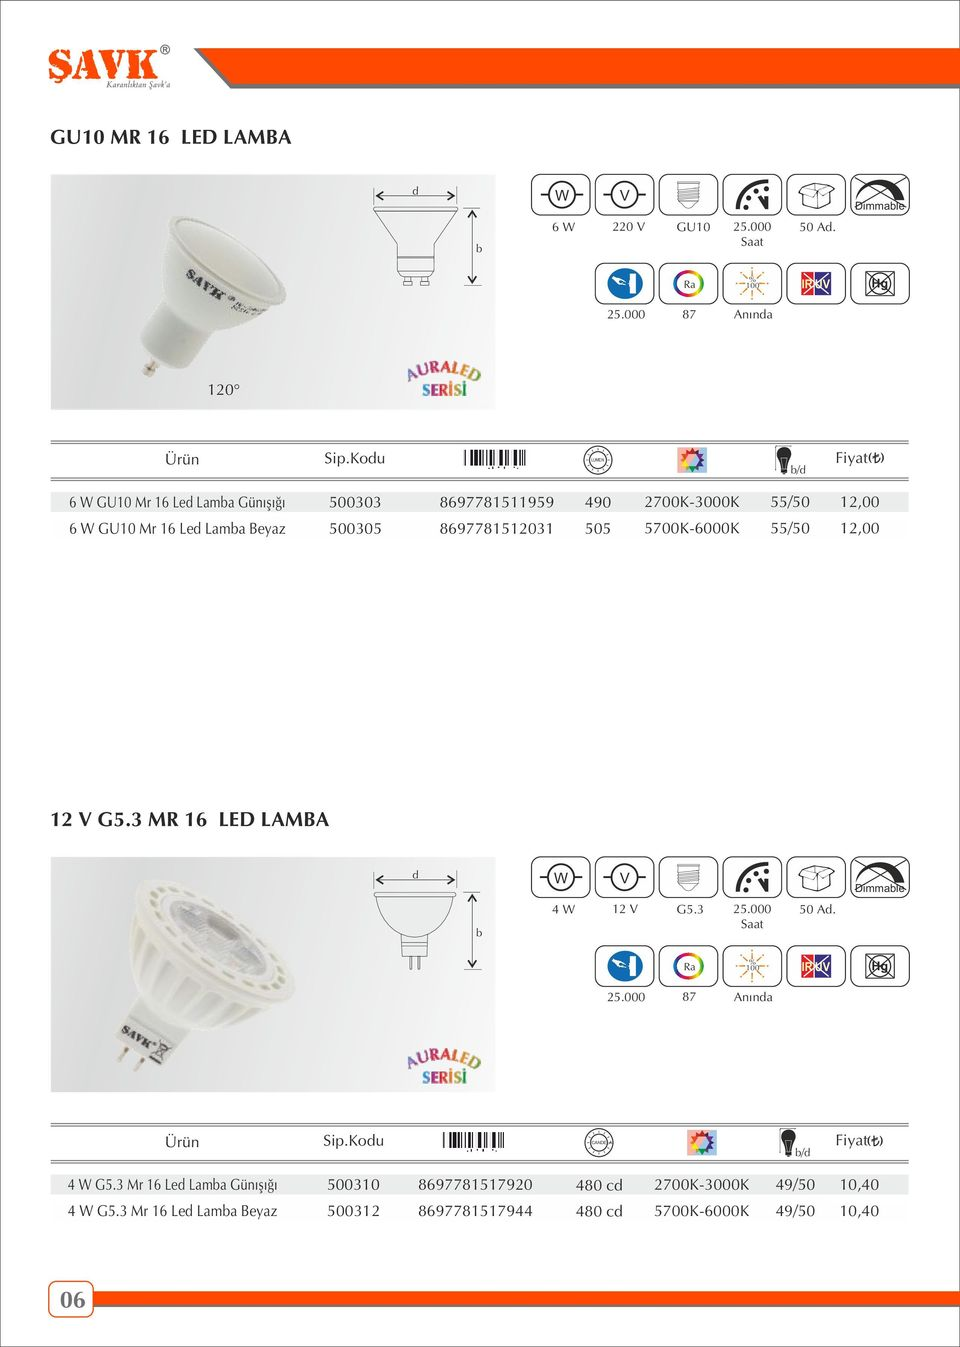 8697781512031 505 5700K-6000K 55/50 12,00 12,00 12 G5.3 MR 16 LED LAMBA 4 12 G5.3 25.000 50 A. Ra 100 IR U 25.